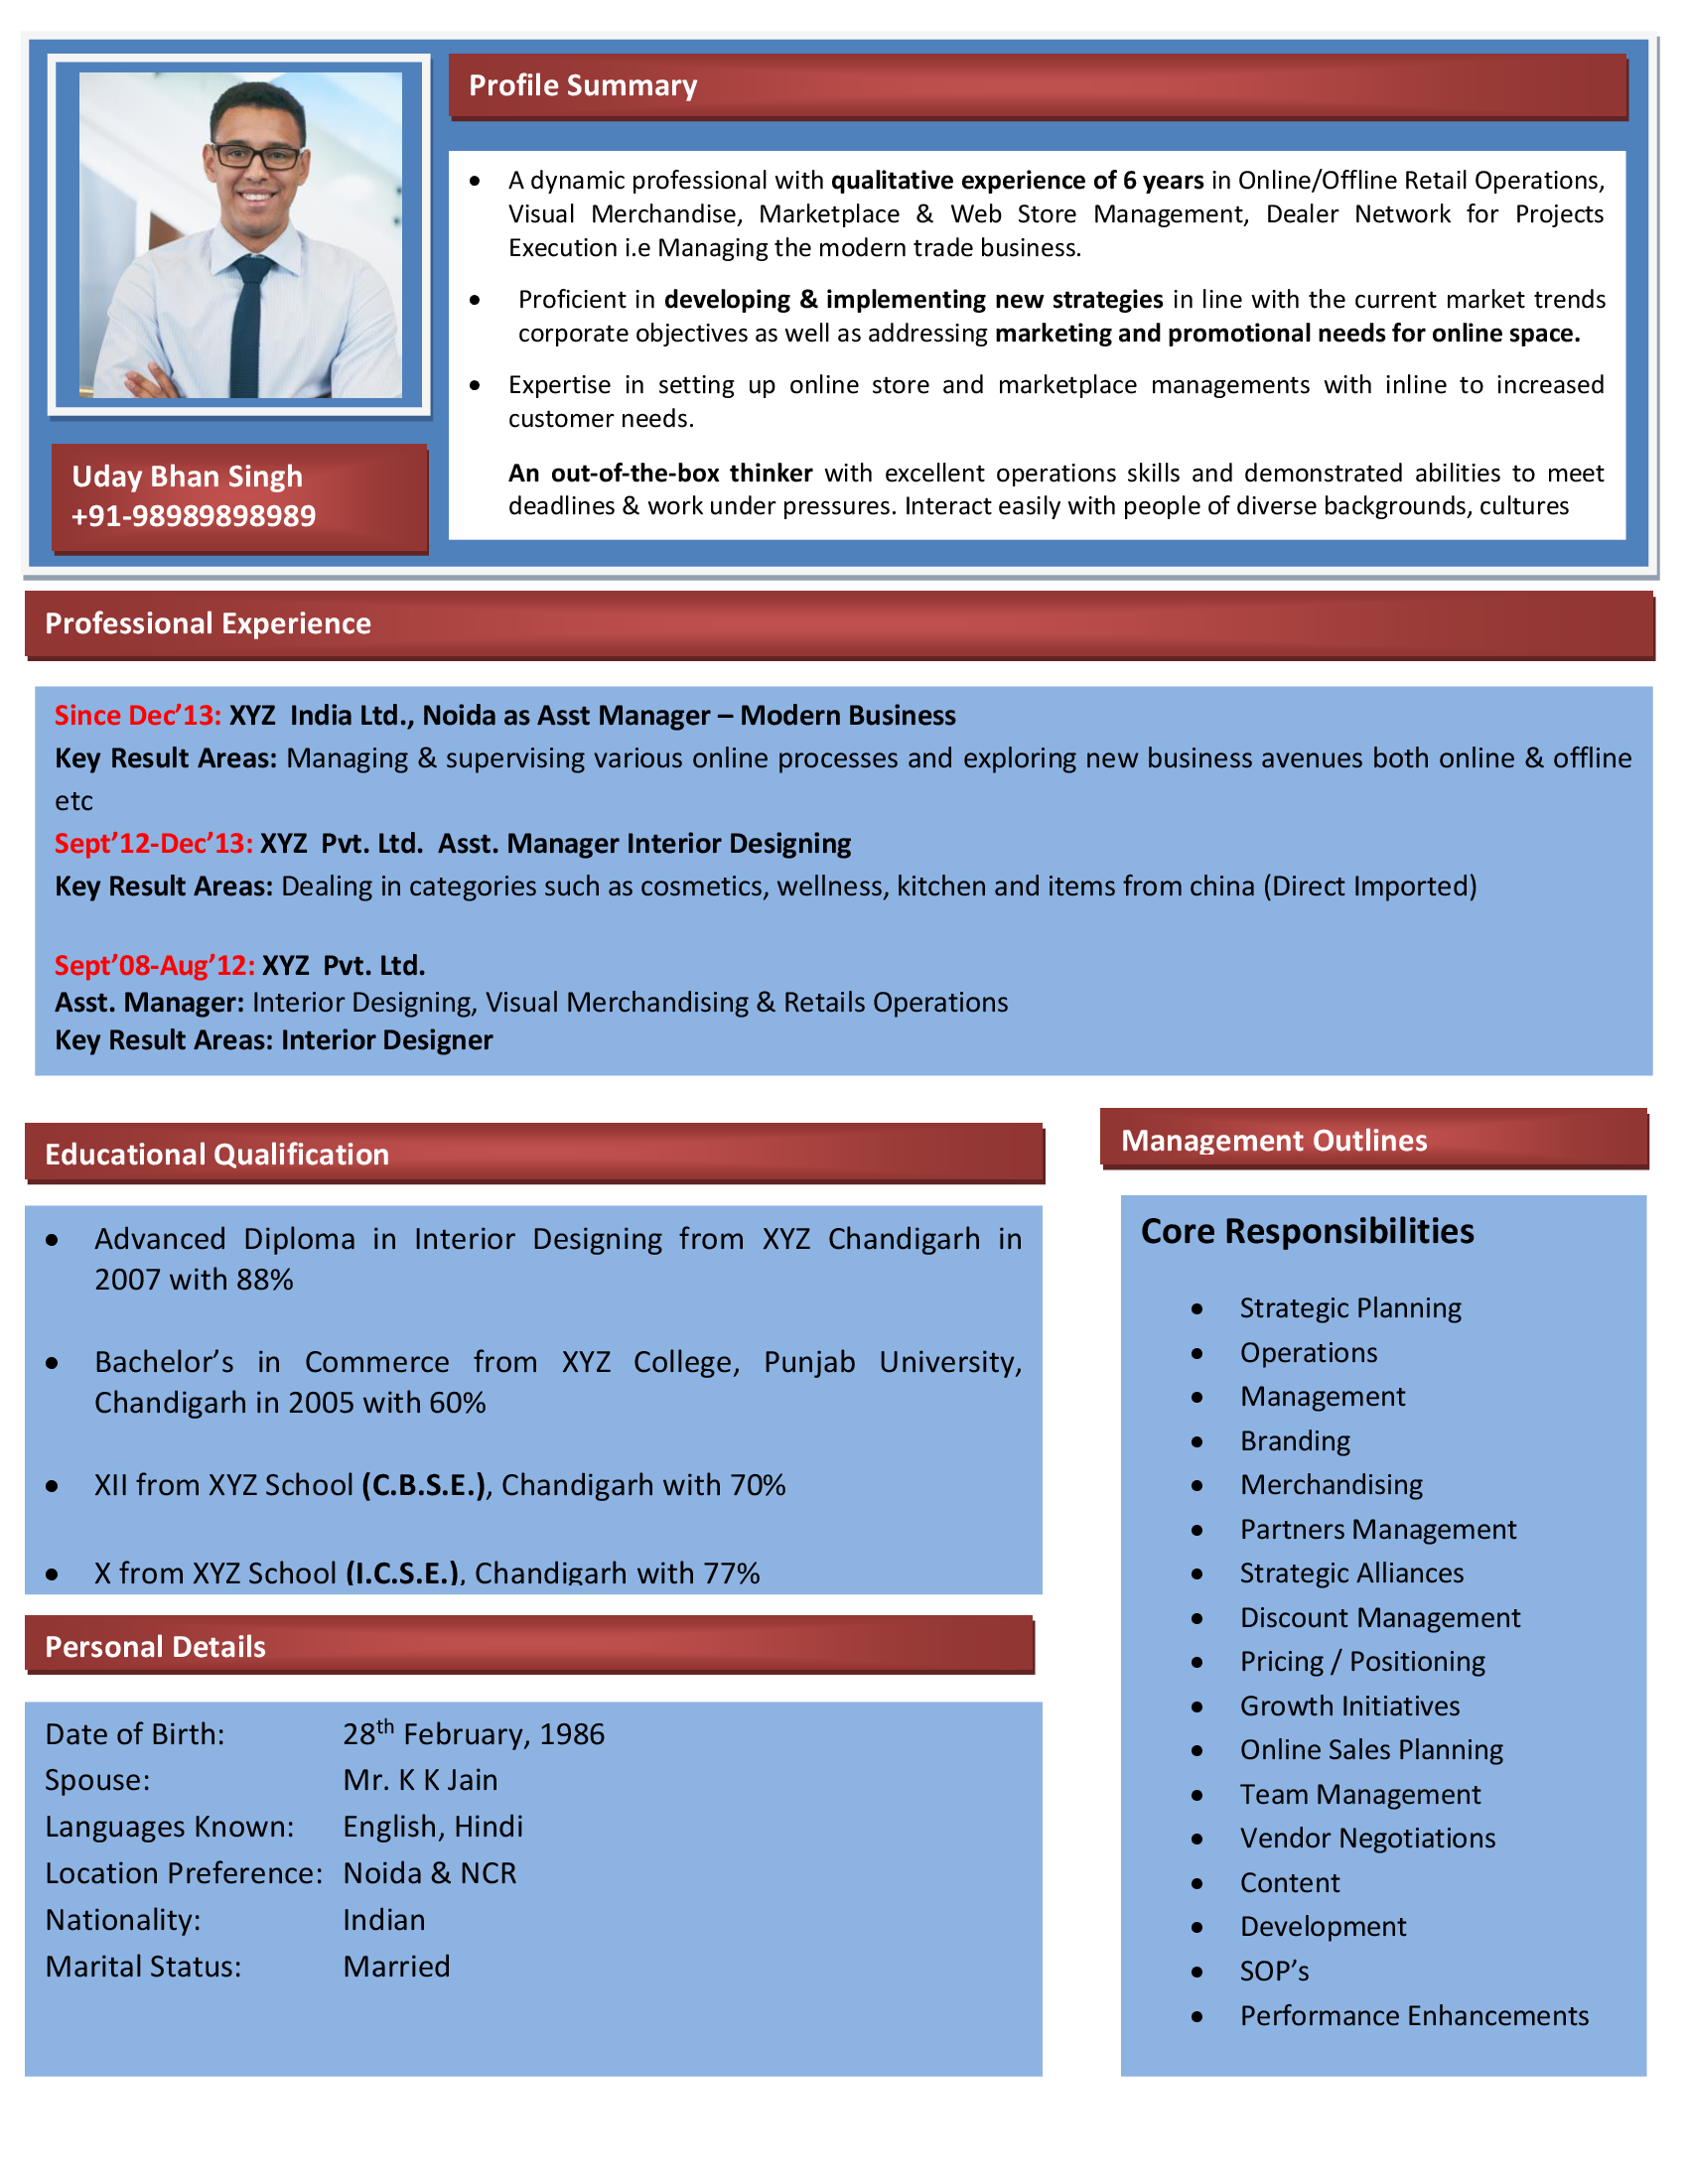 SEO Executive Resume | SEO Executive Resume Format | SEO Executive ...